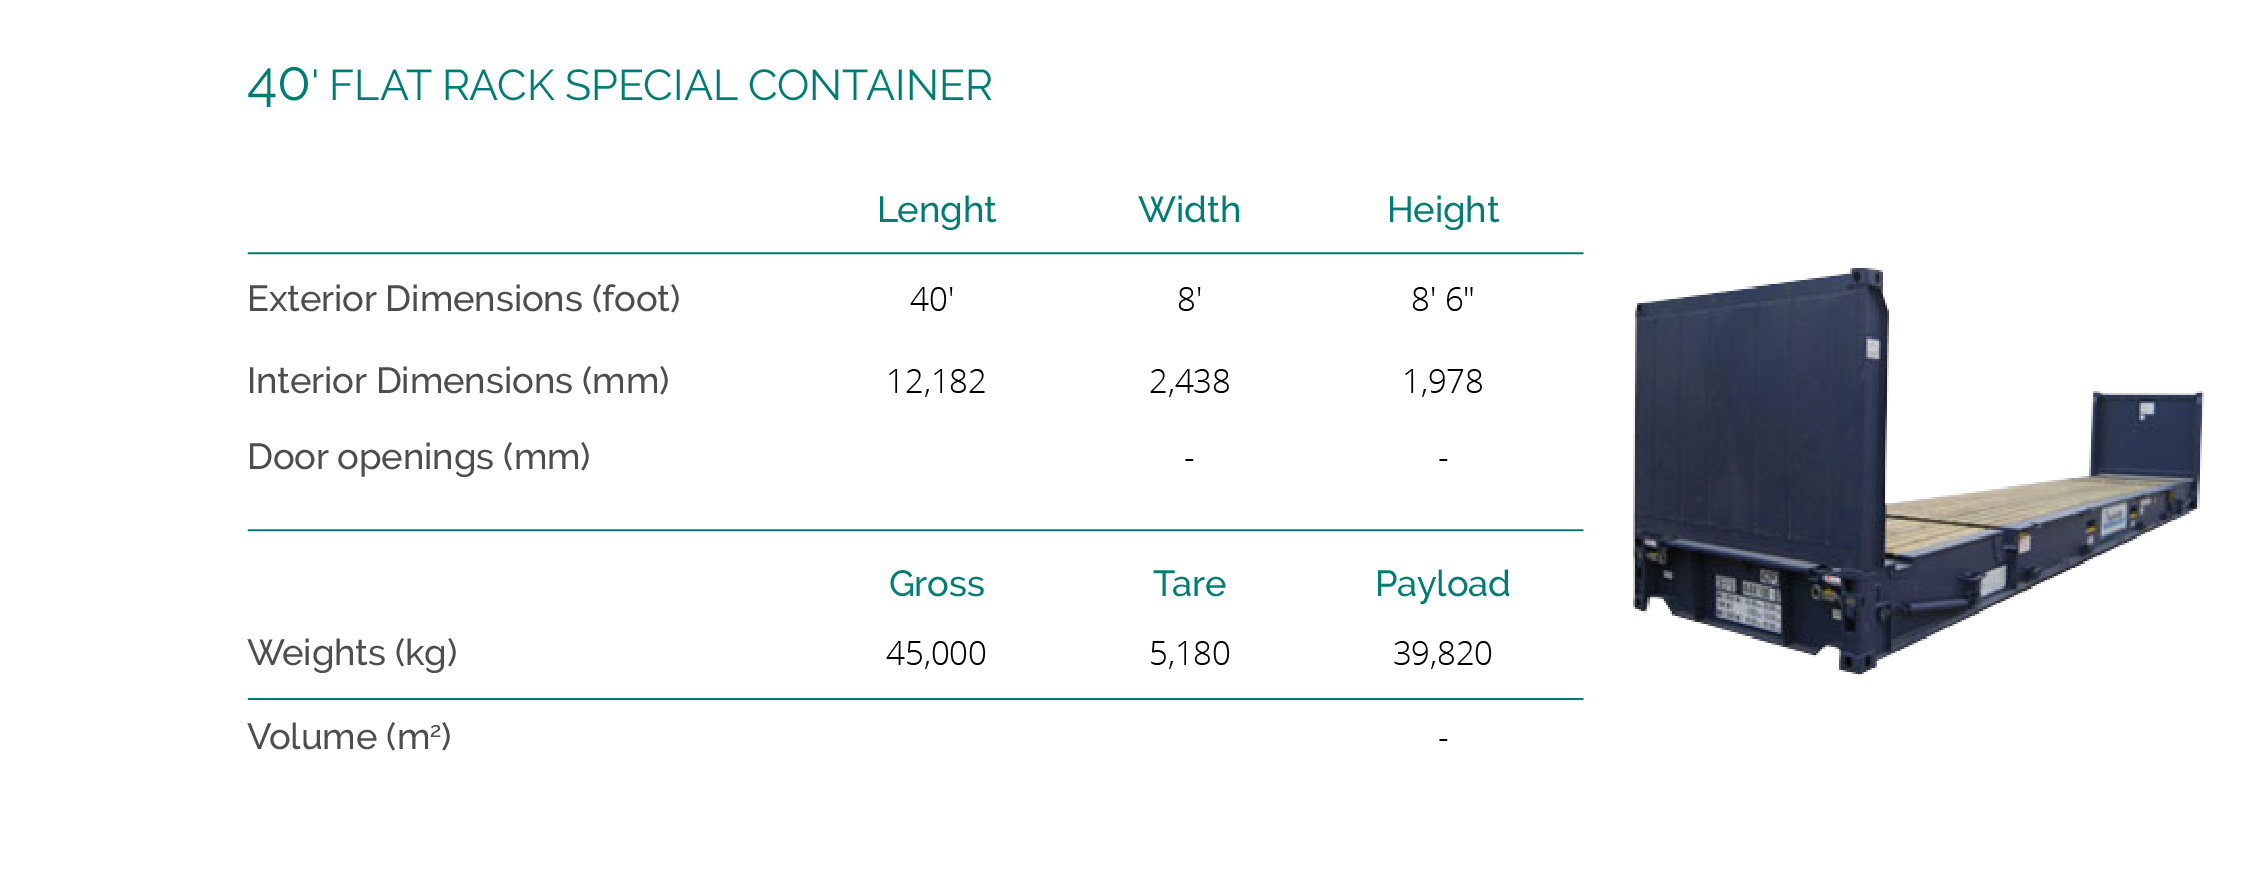 40' FLAT RACK SPECIAL CONTAINER